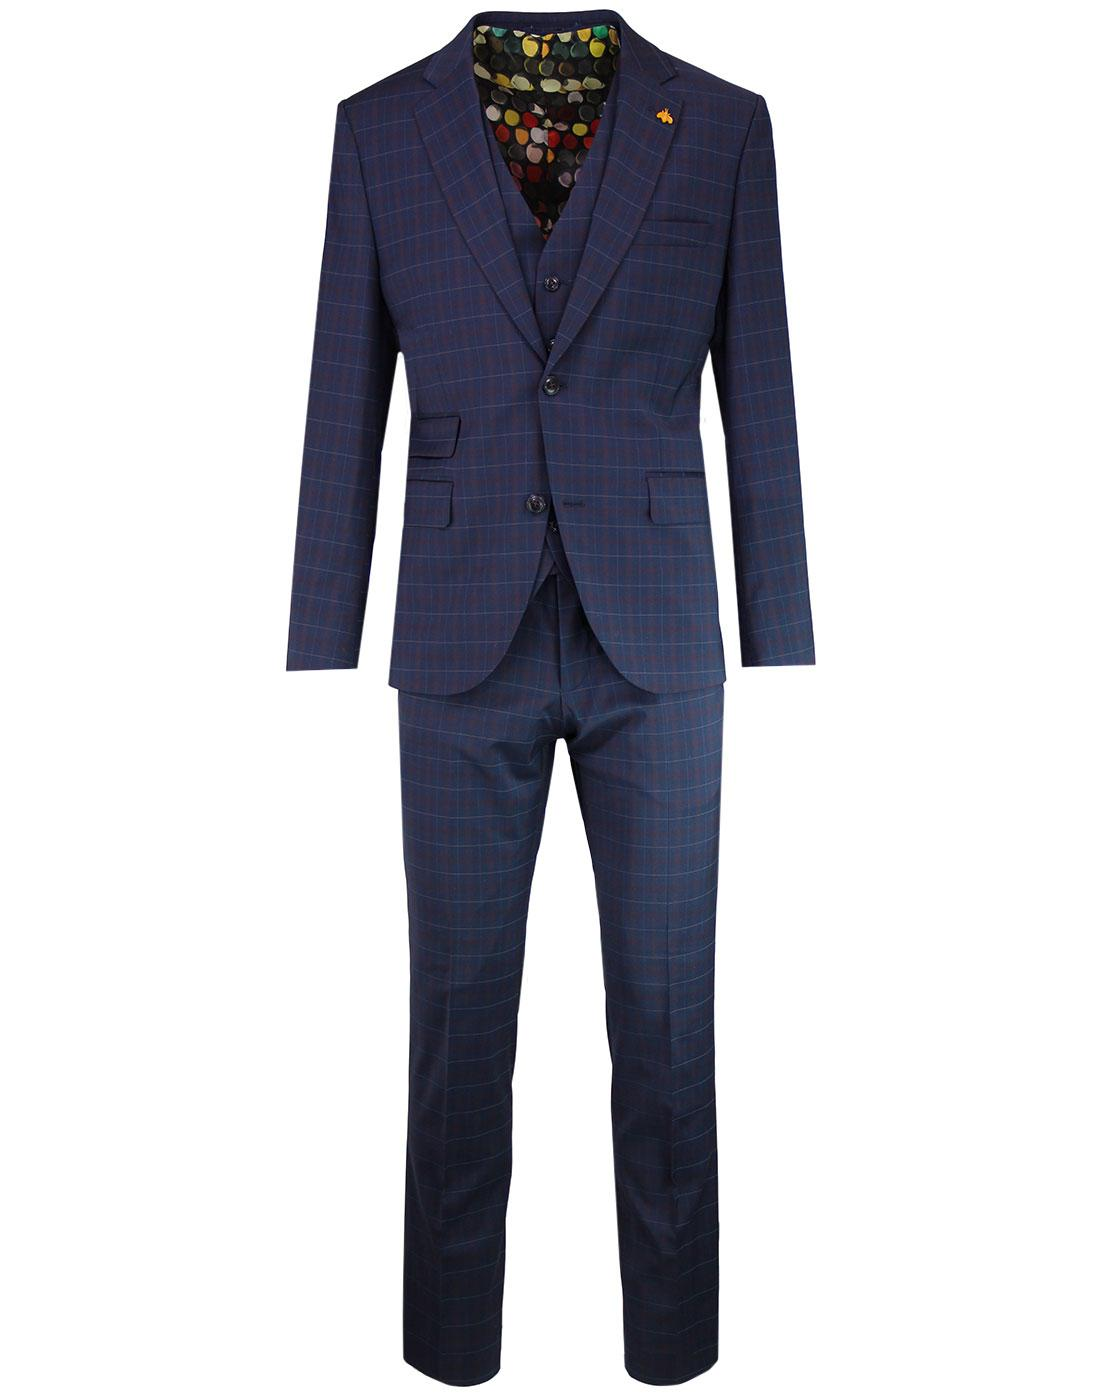 Marriott GIBSON LONDON Tartan Check Suit in Navy